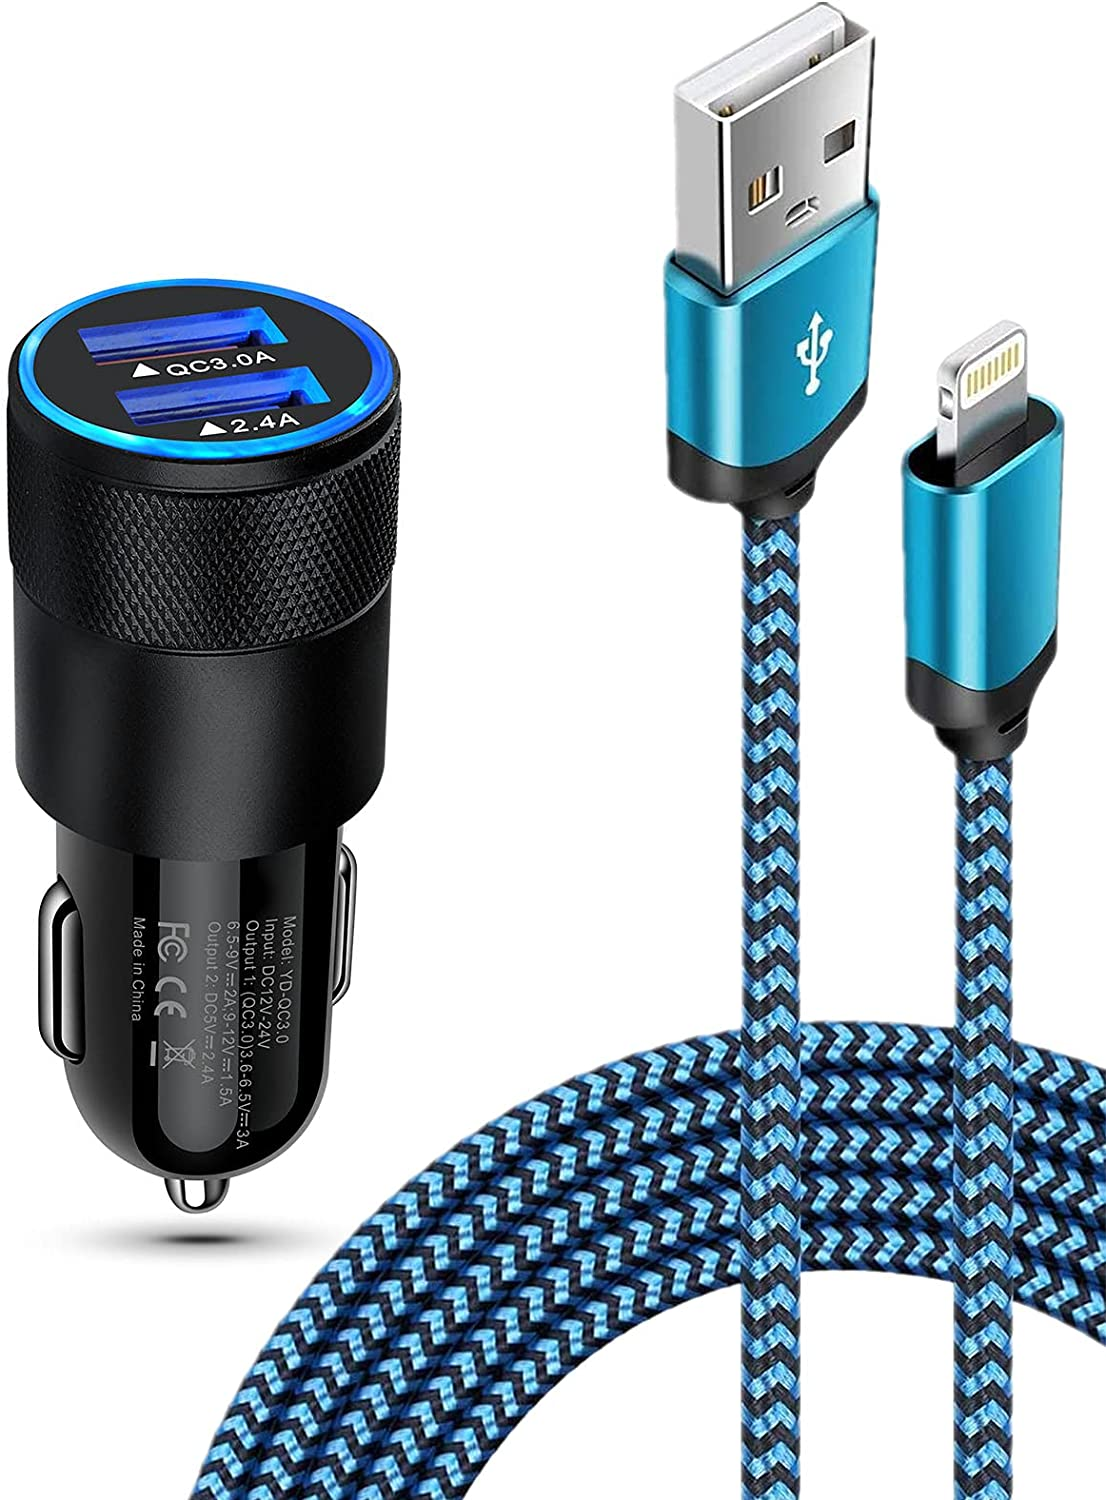 iPhone Car Charger Kit Fast Charging for iPhone 12 Pro Max Mini SE 11Pro Max X 10 XR XS 8 Plus 7 6 6S 5, 30W Dual Port Lighter Adapter + Braided Apple Lightning Cable Cigarette Car Block Cord Wire 6FT